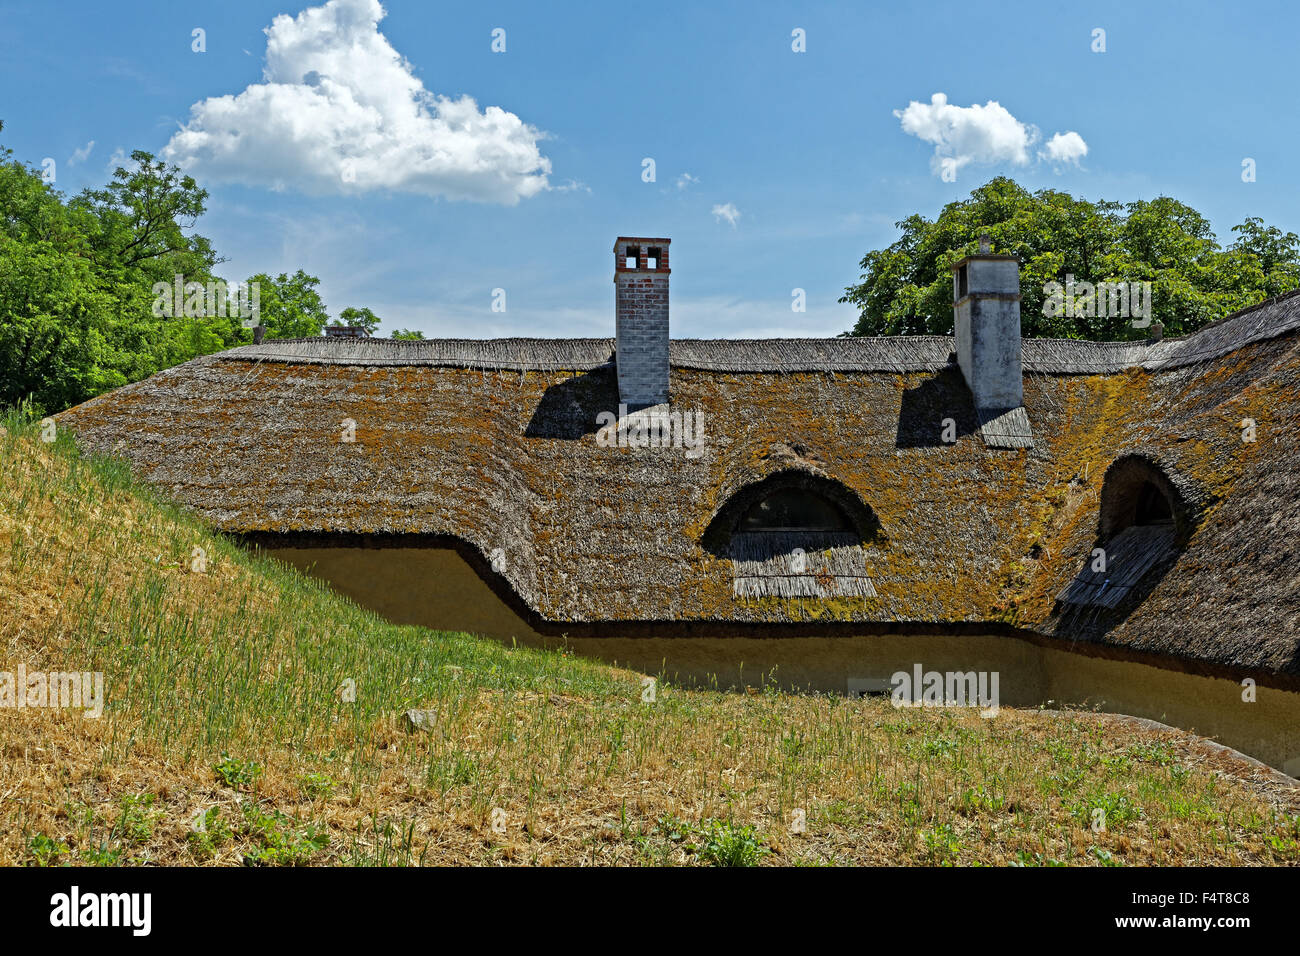 Building, old, historically, thatched roof - Stock Image